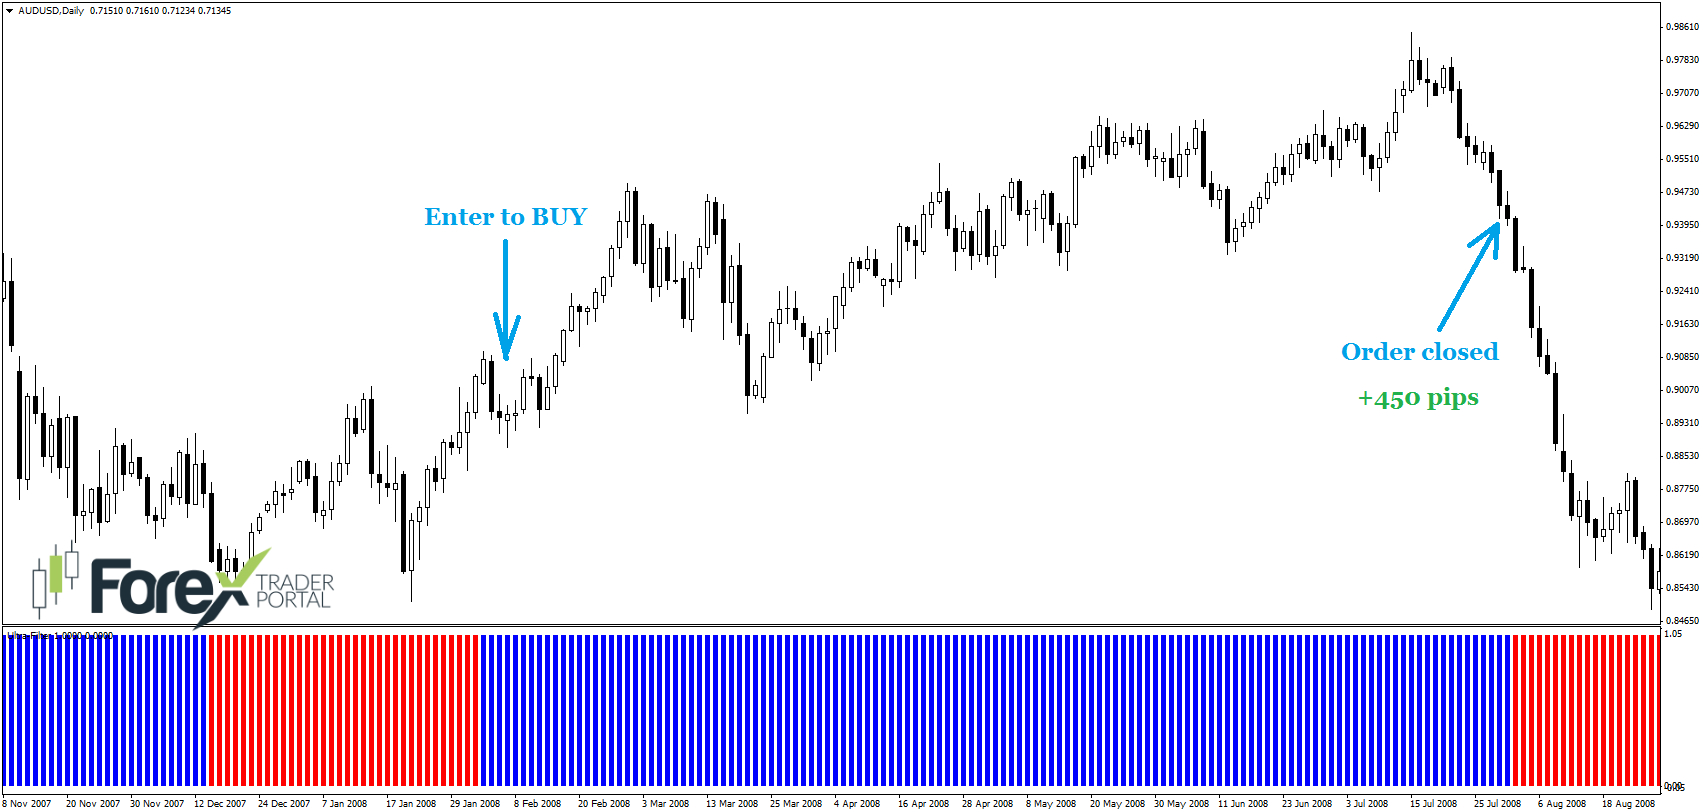 39 pips a 0.01 forex